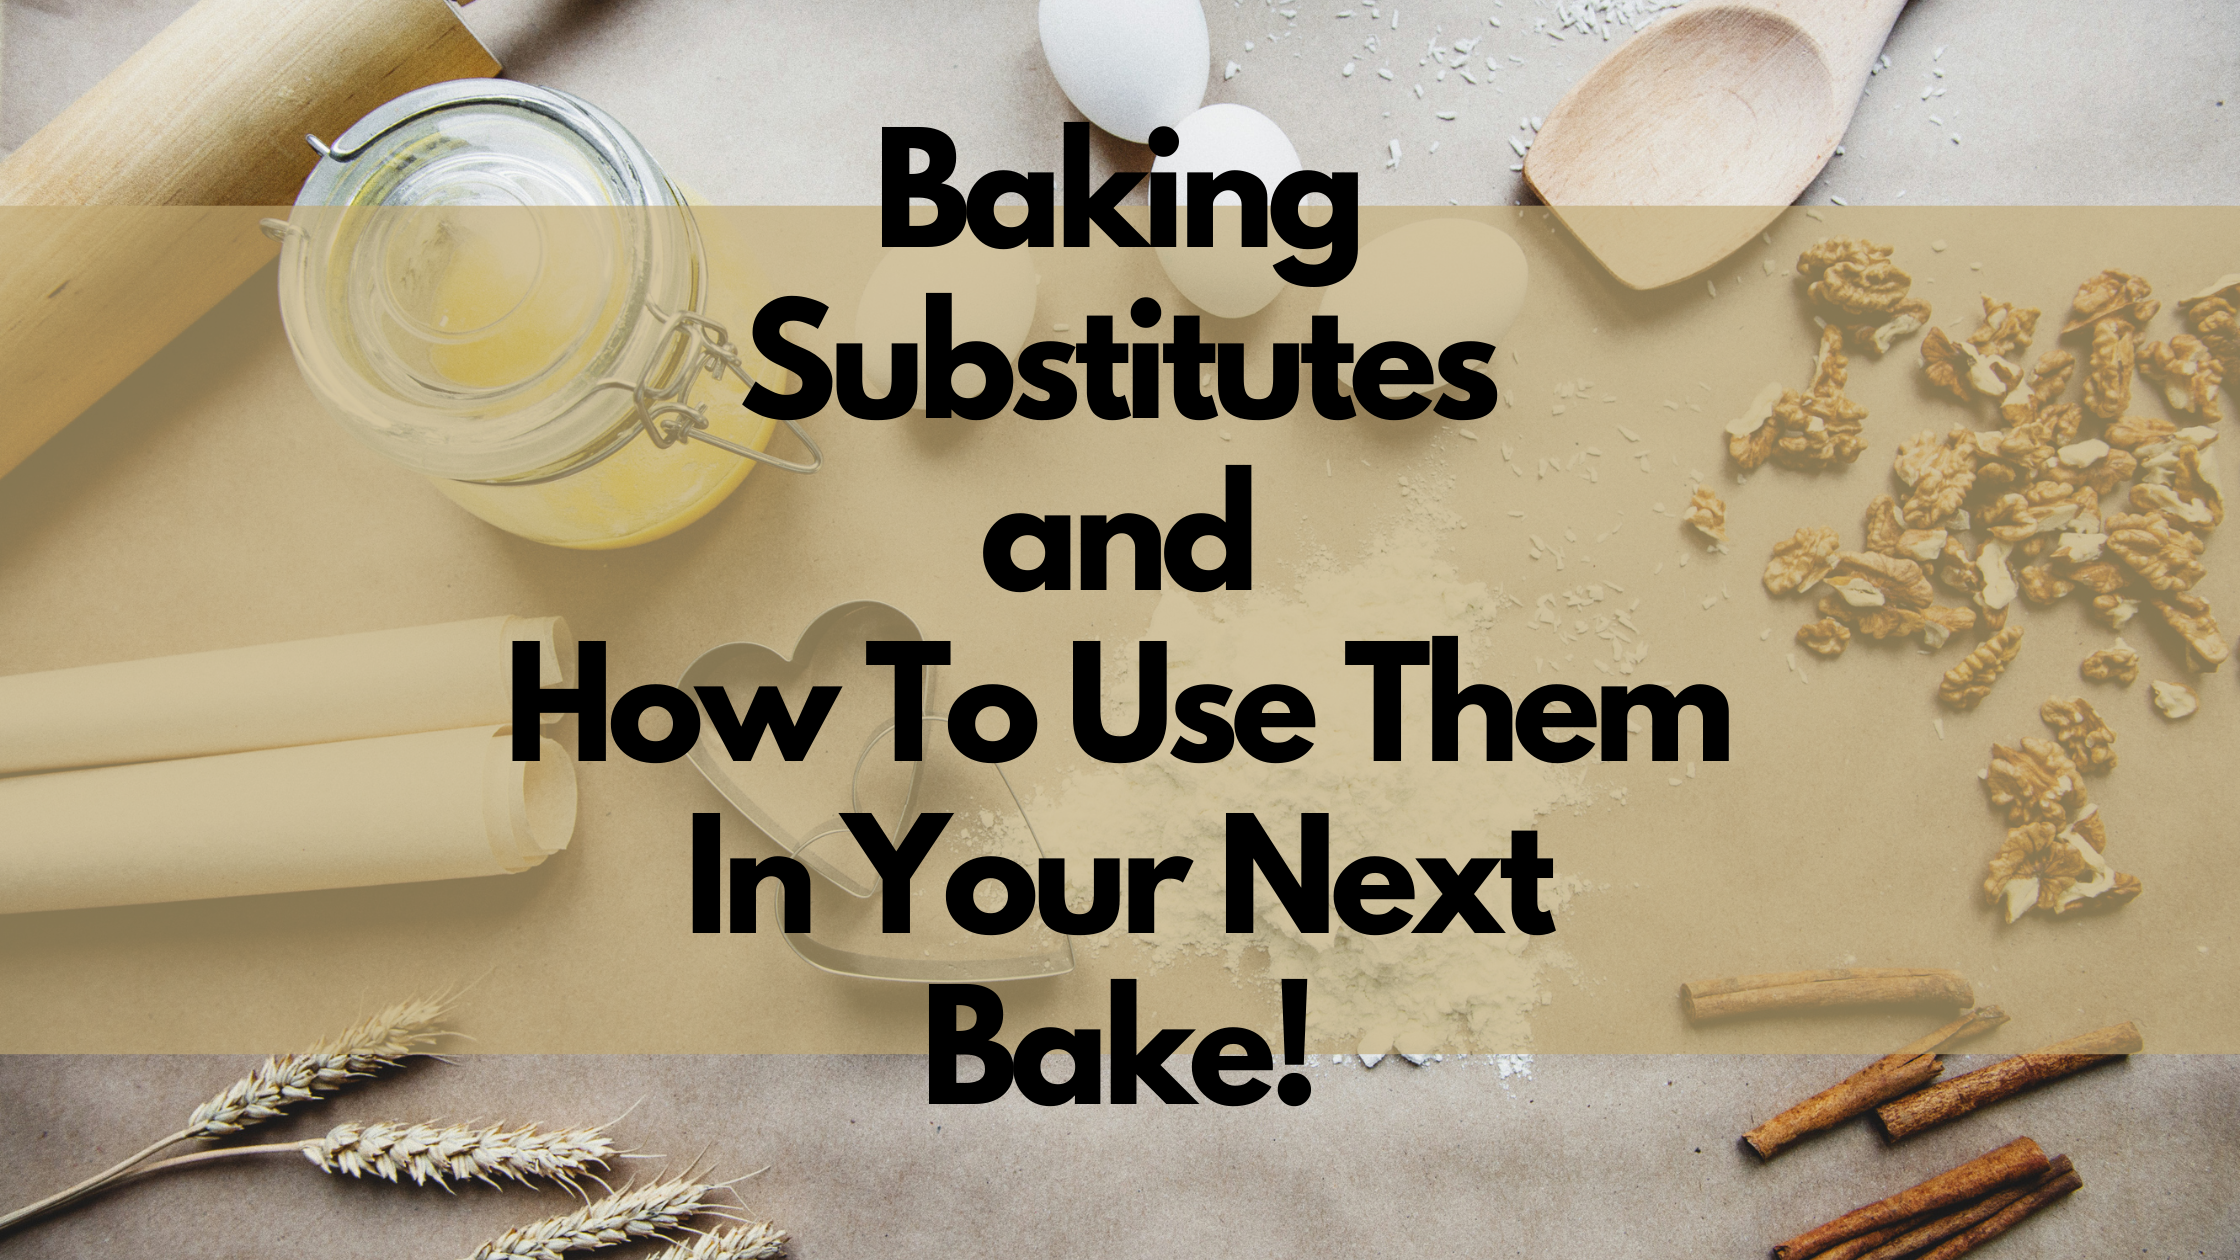 Baking Substitutes to use